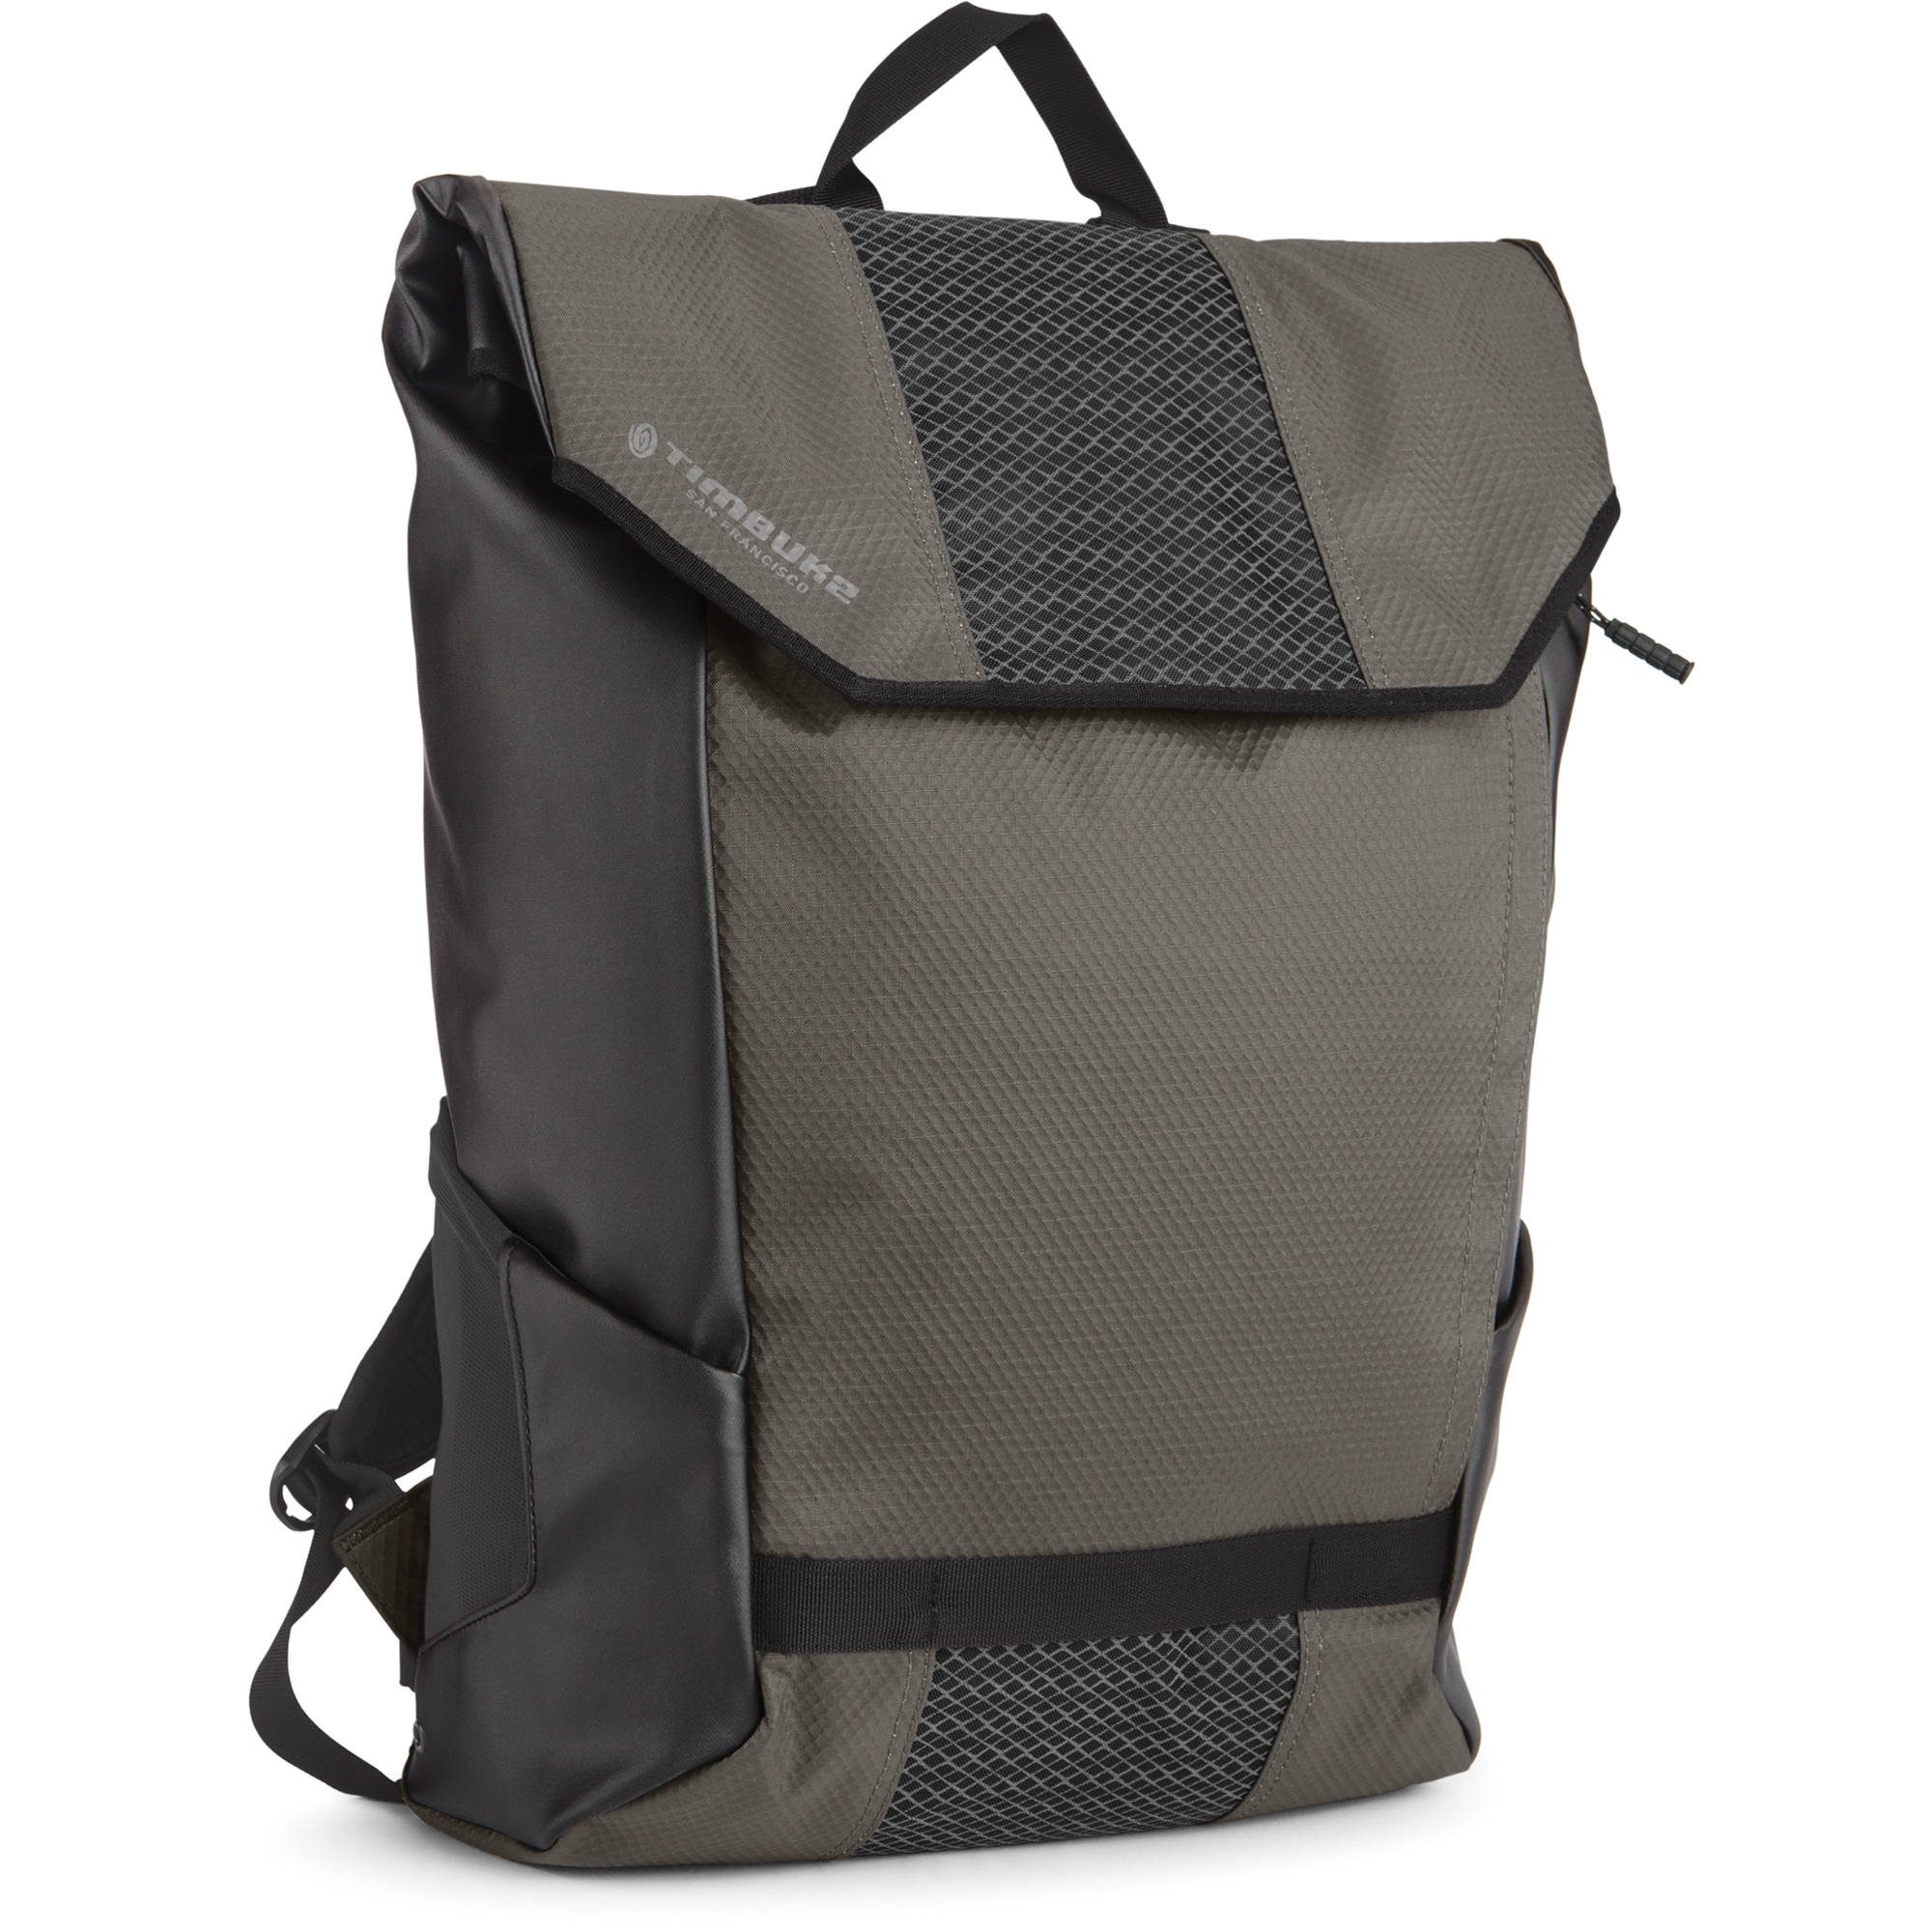 Timbuk2 Especial Vuelo Cycling Laptop Backpack 458-3-2182 B&H